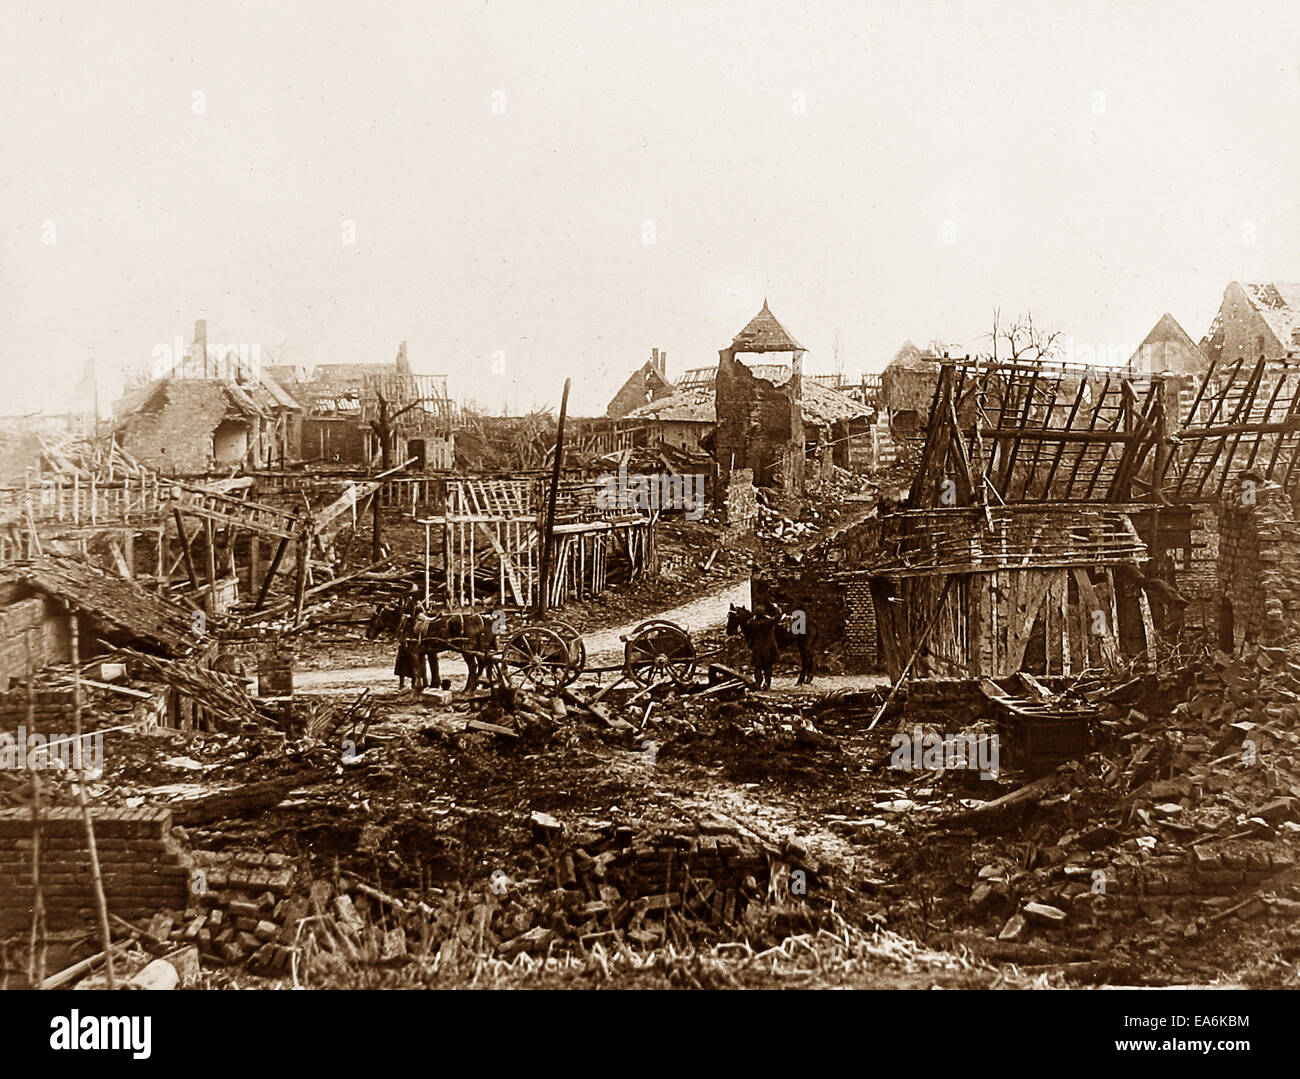 Misery Village France WW1 - Stock Image